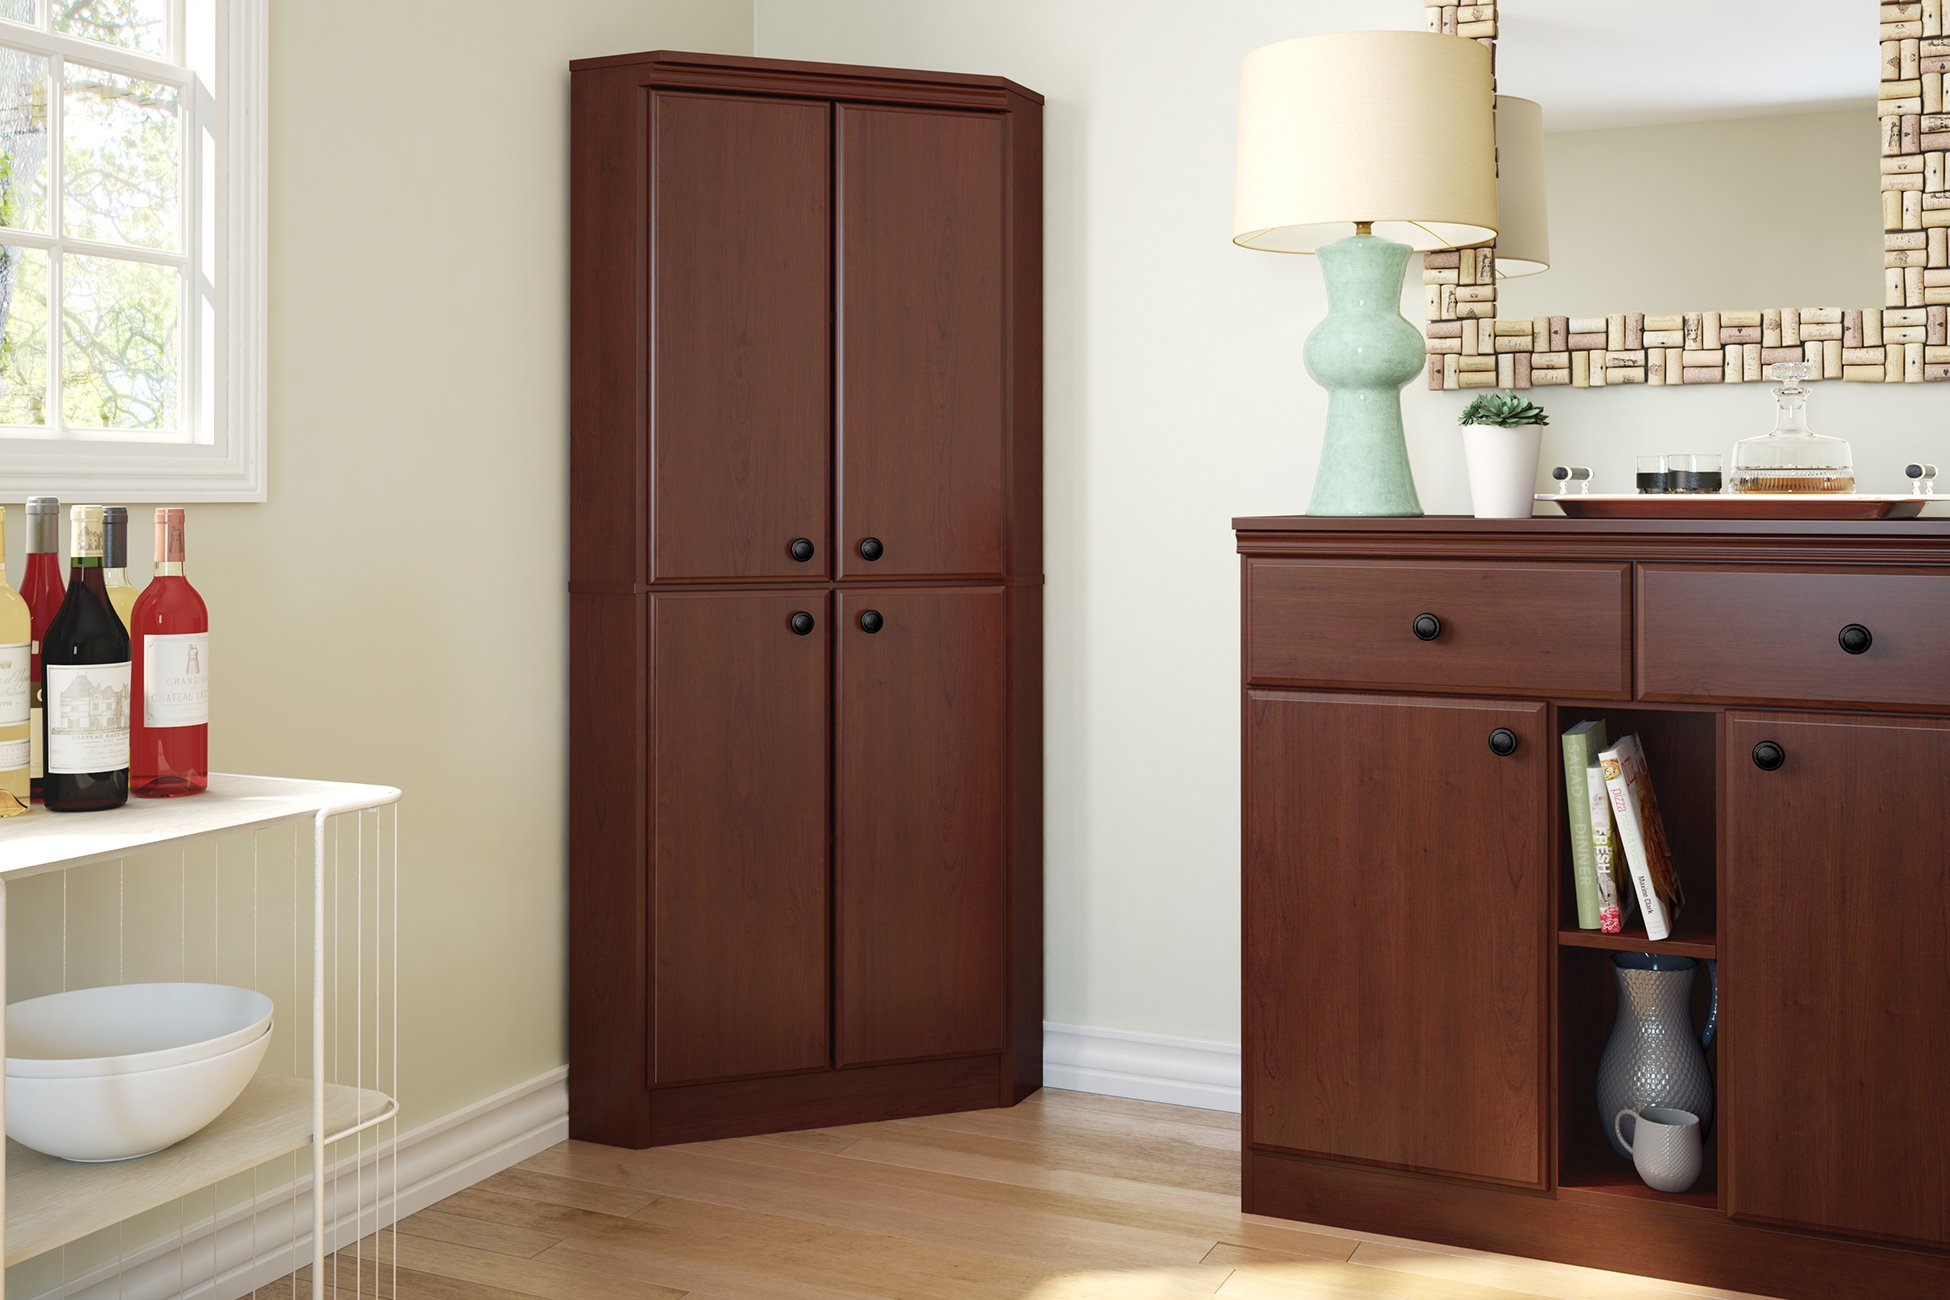 South Shore 4-Door Corner Armoire for Small Space with Adjustable Shelves, Royal Cherry by South Shore (Image #3)